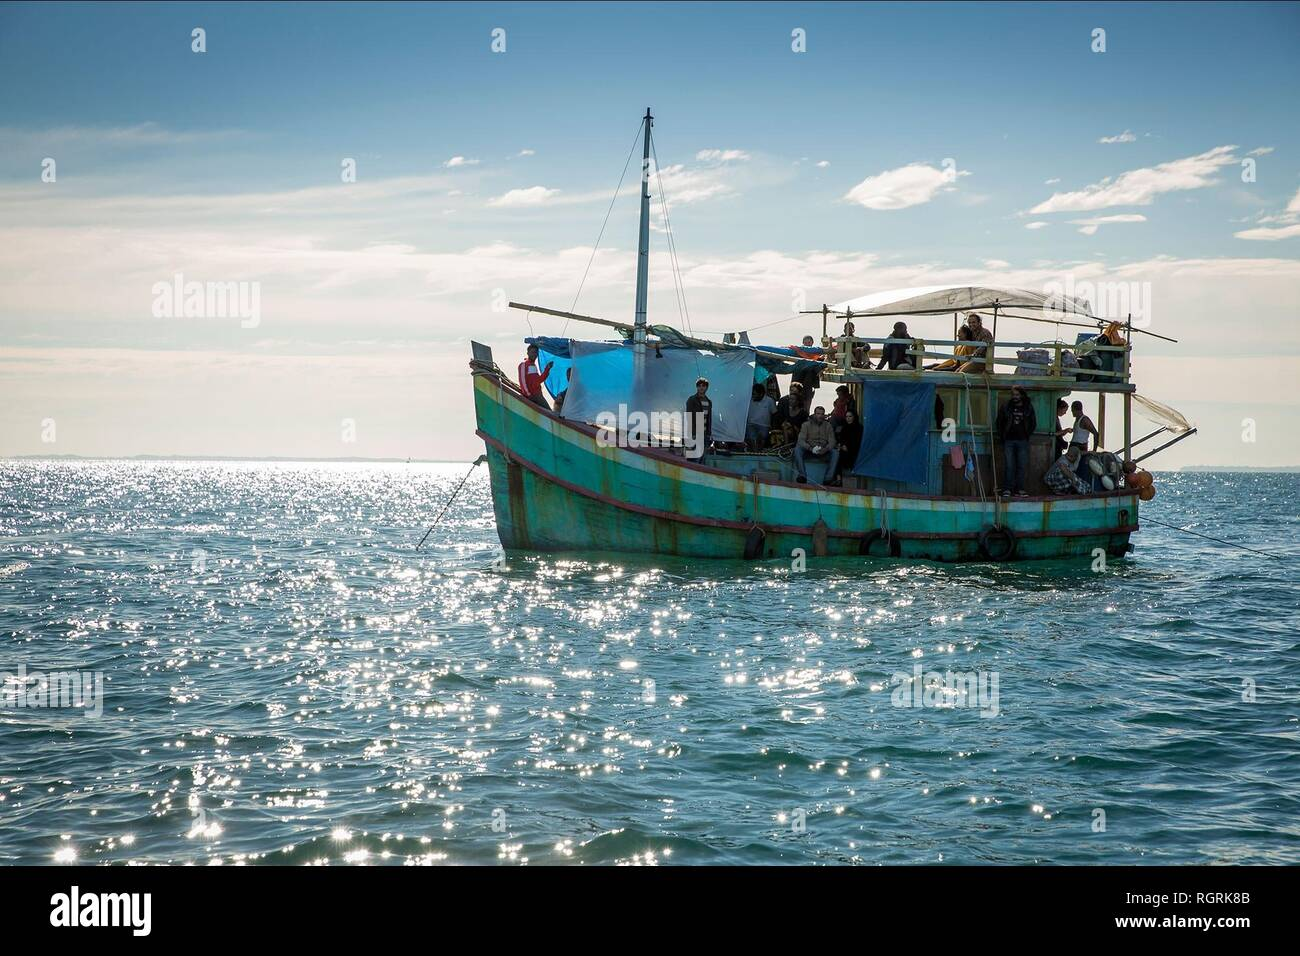 REFUGEE ASYLUM SEEKERS SAFE HARBOUR (2018) - Stock Image